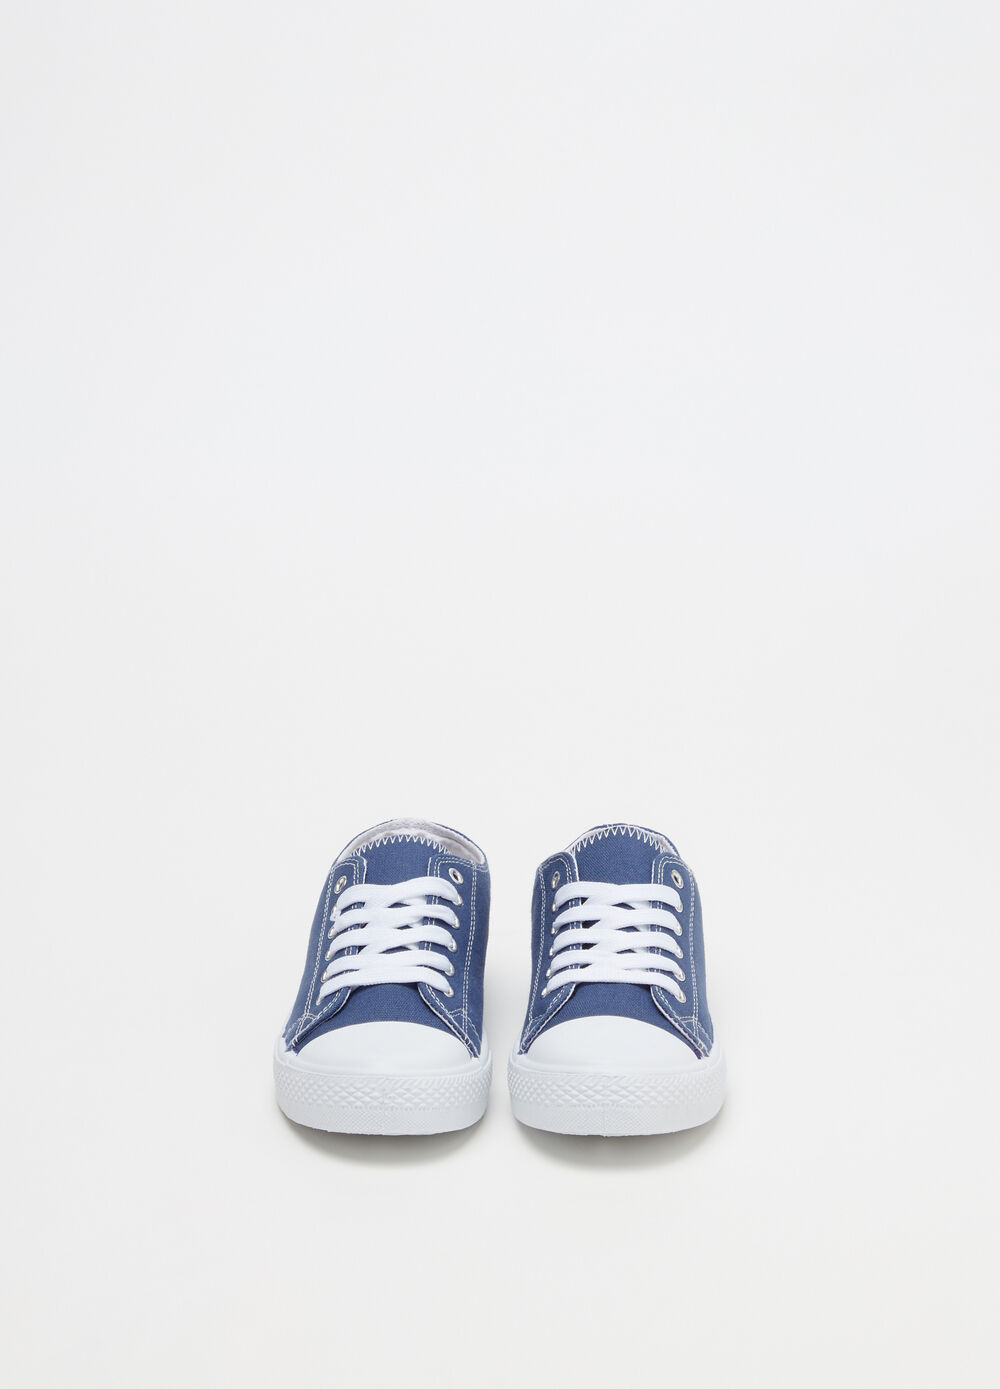 Solid colour sneakers with contrasting laces